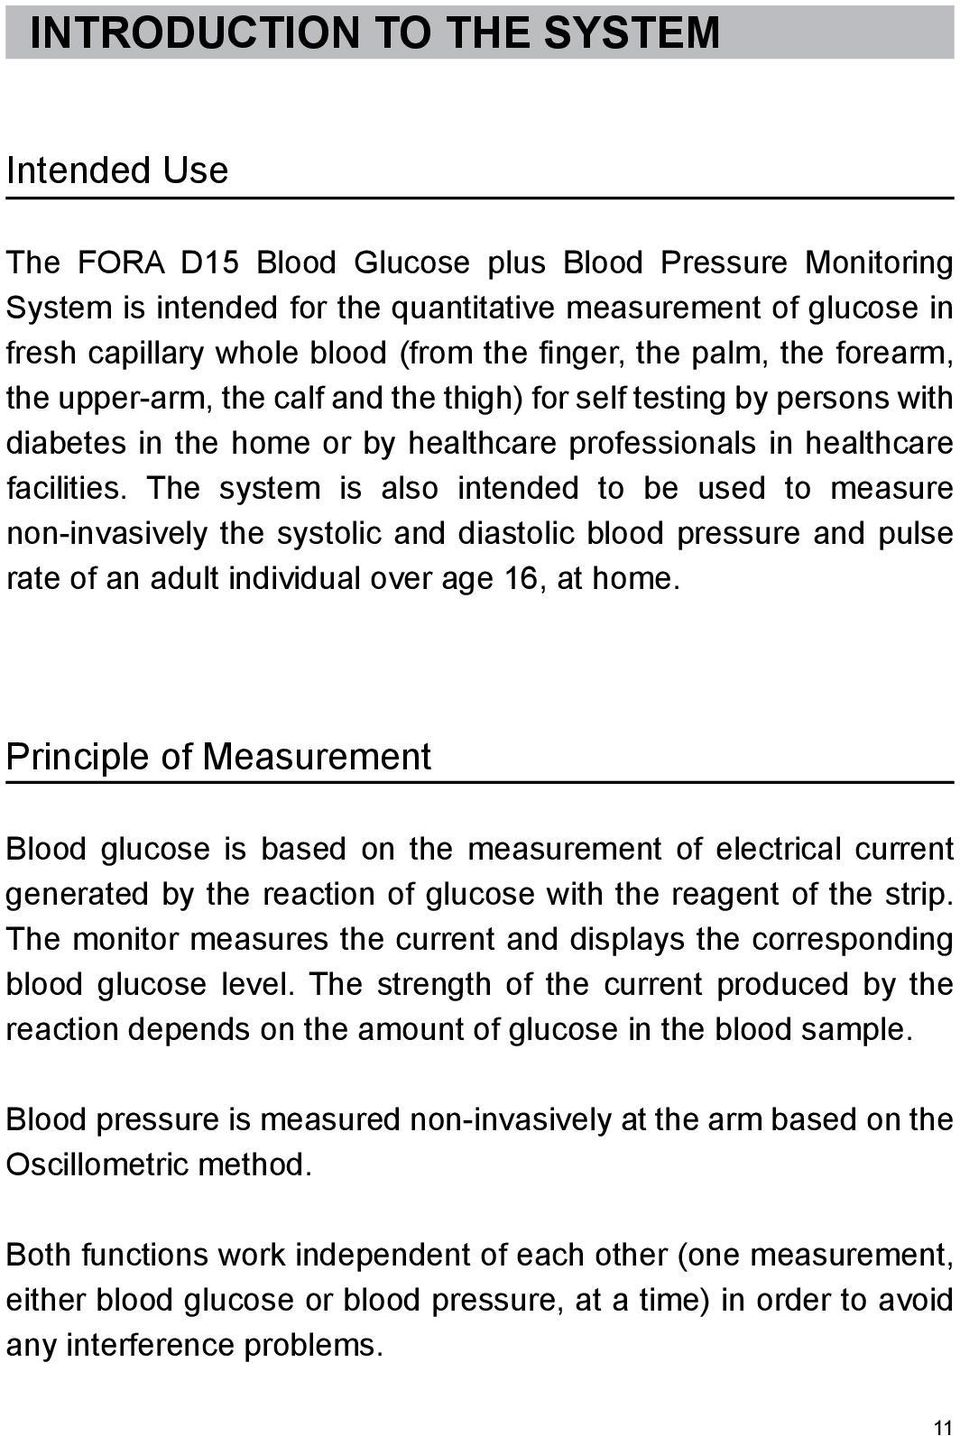 The system is also intended to be used to measure non-invasively the systolic and diastolic blood pressure and pulse rate of an adult individual over age 16, at home.